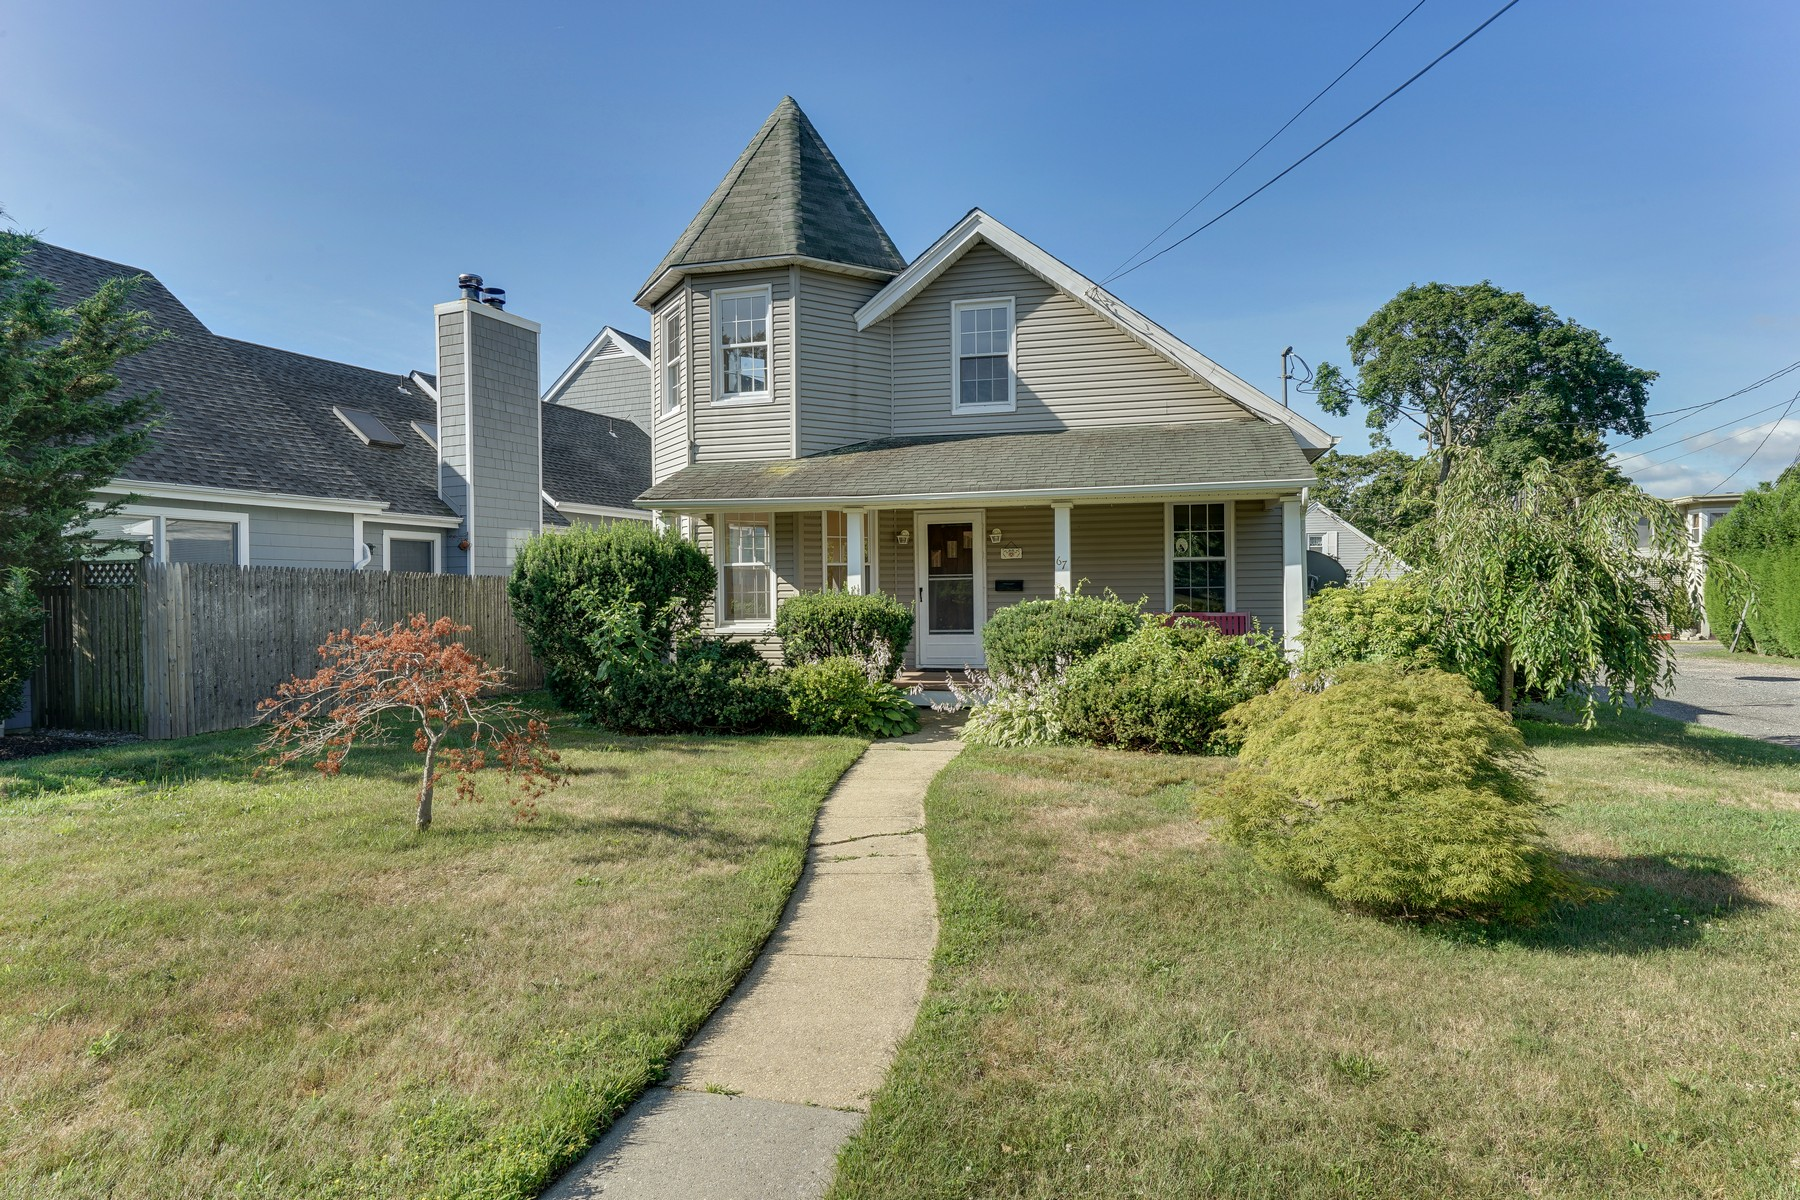 Multi-Family Home for Sale at Two Family House 67-67 12 Sea Girt Ave Manasquan, New Jersey, 08736 United States